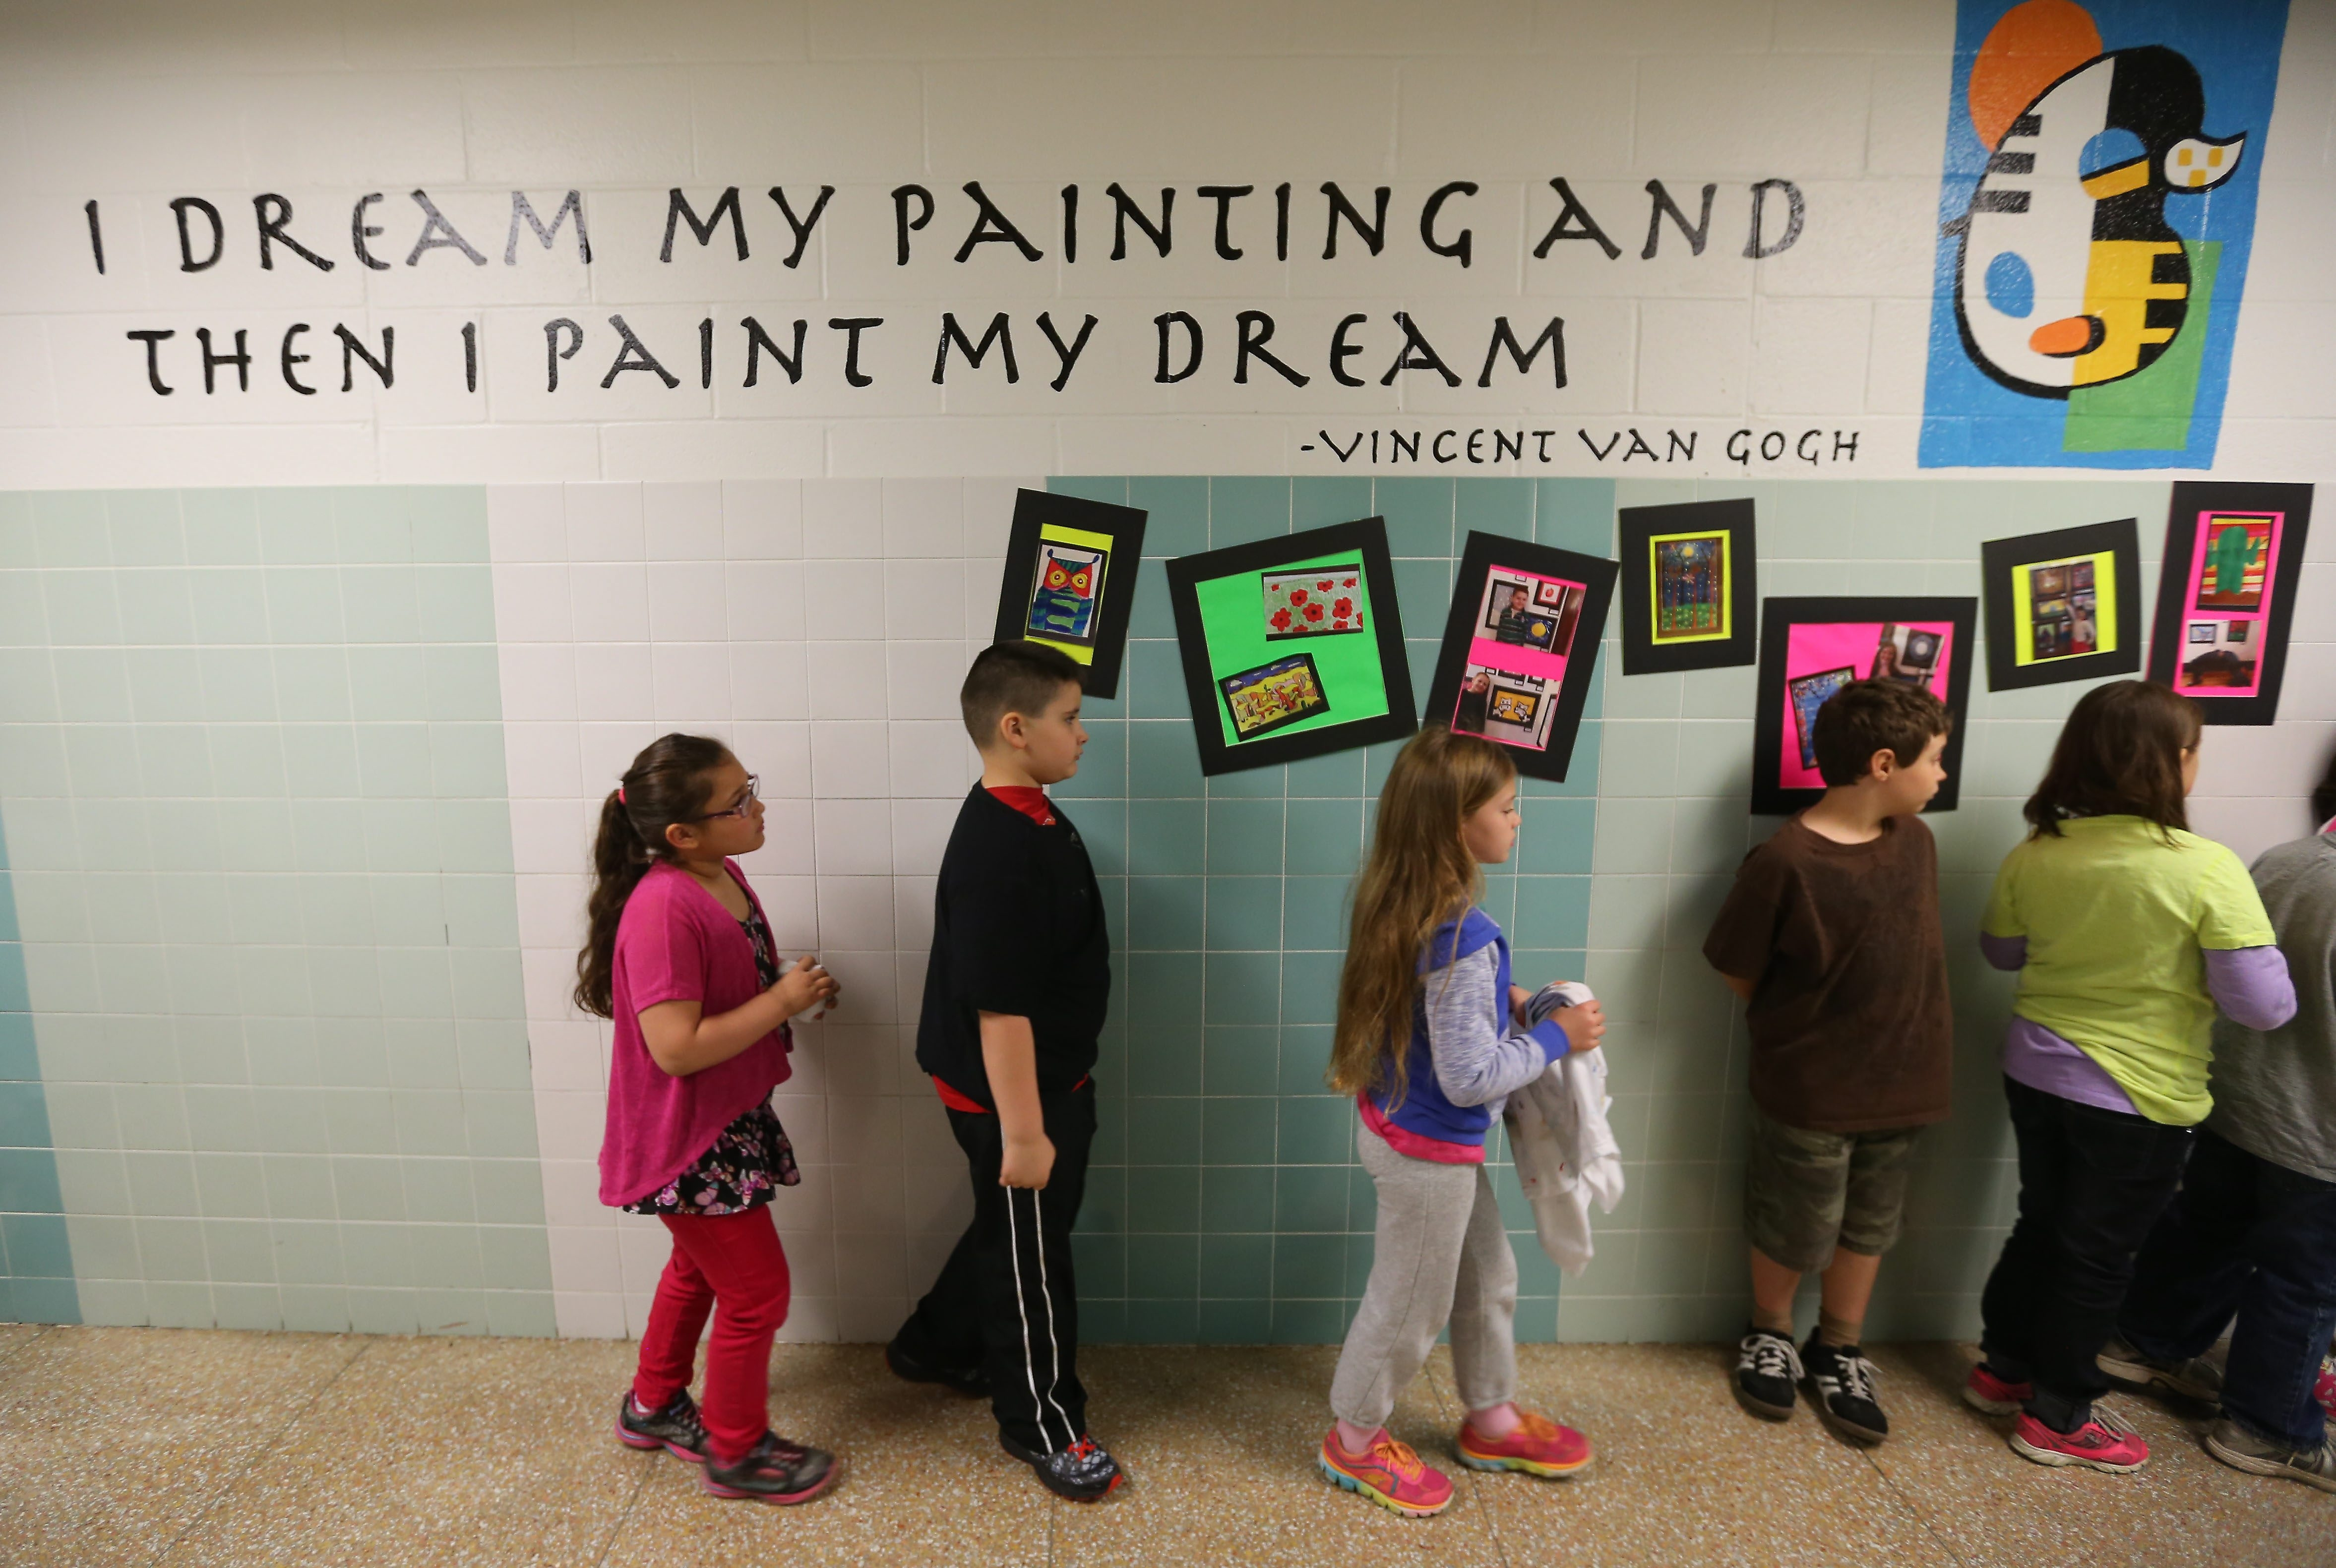 Students wait to enter art class at Potters Road Elementary School in West Seneca. The school will close after the school year ends in June.